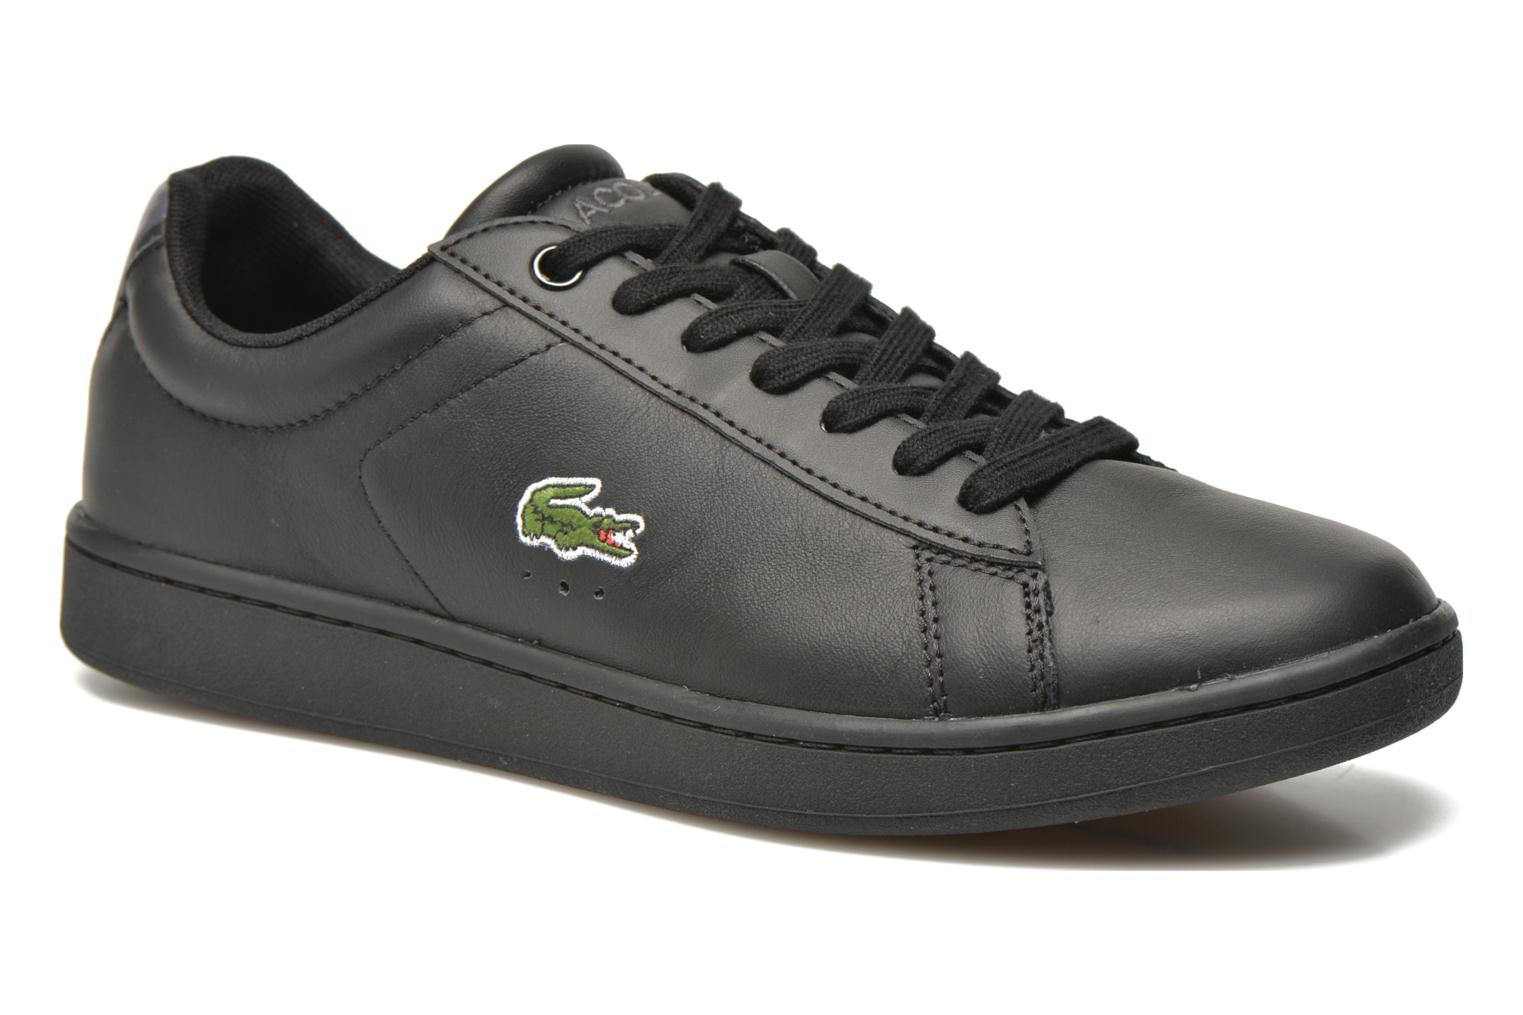 Carnaby Evo S216 2 Black/dark grey